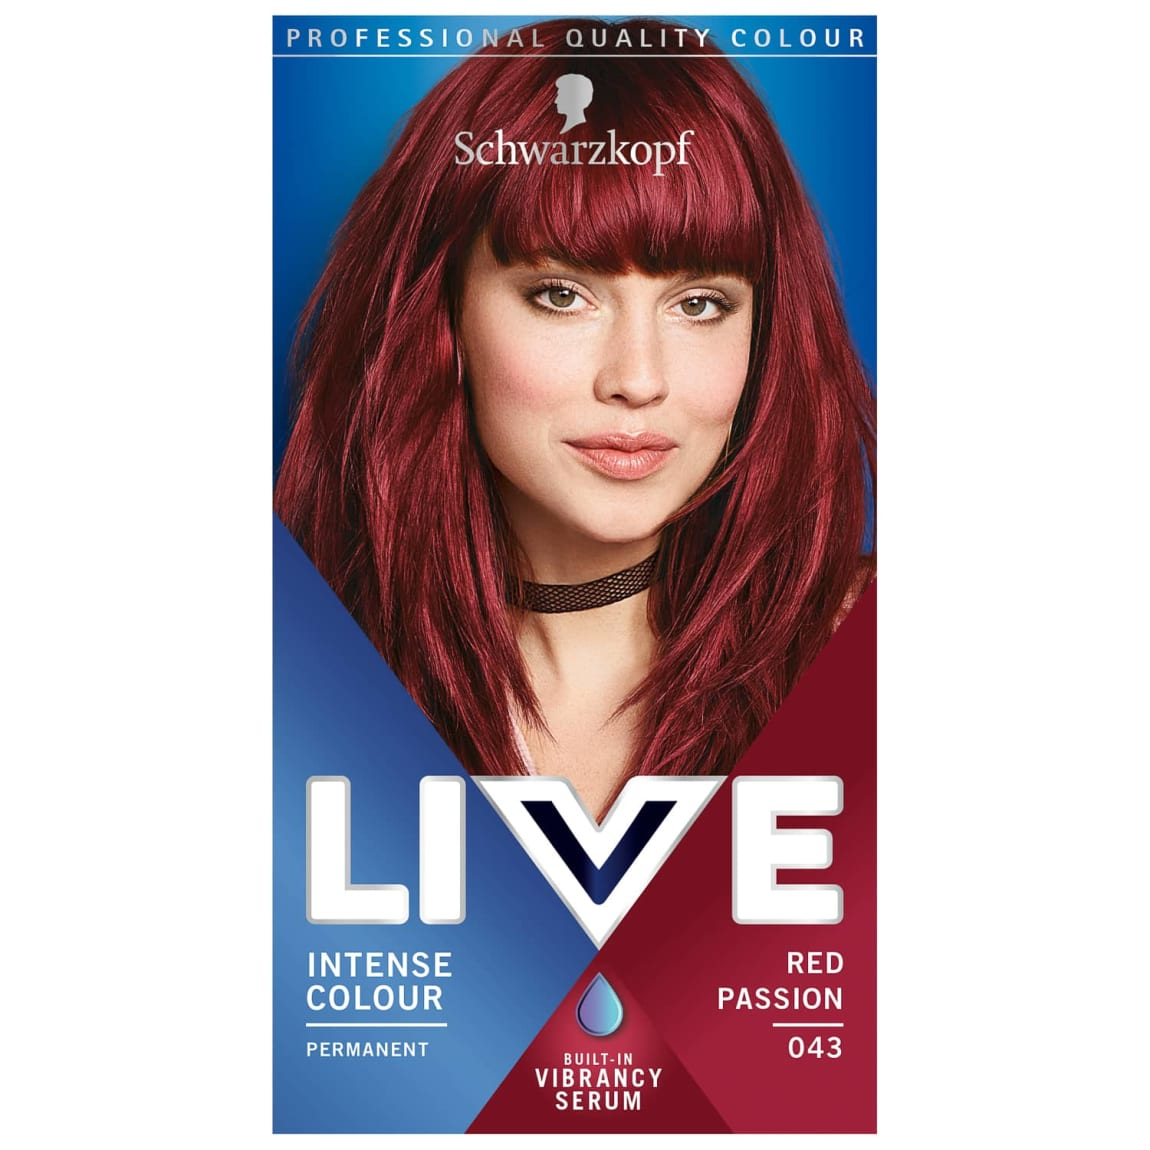 Schwarzkopf Live Colour - Red Passion